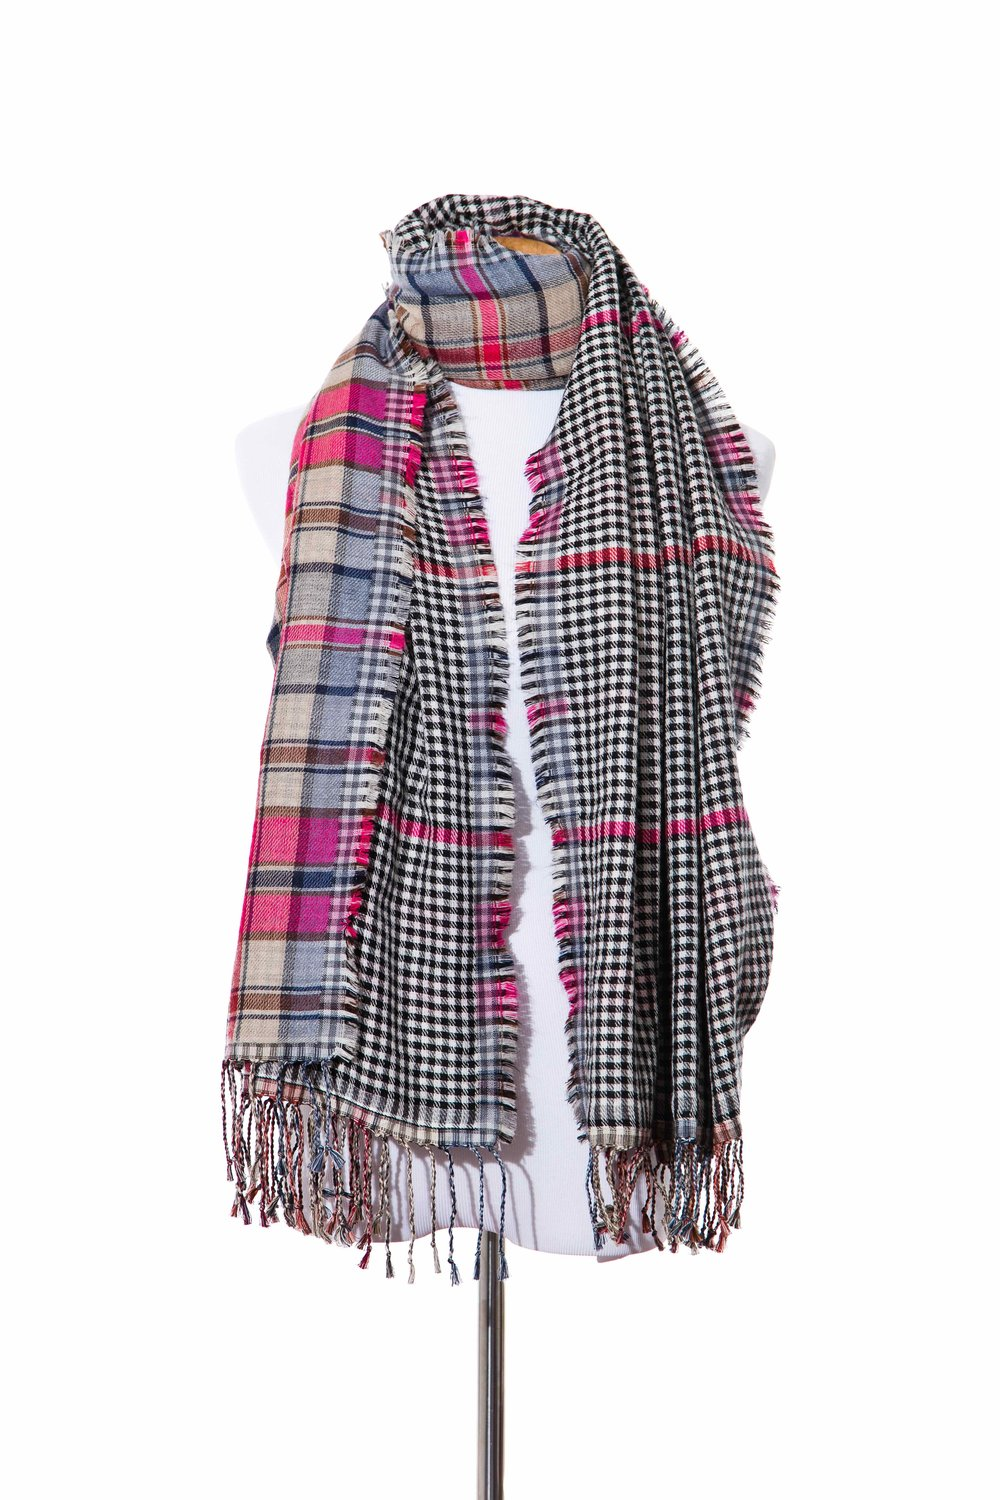 STYLE NO:# 11008  COLOR: PINK BLACK MULTI  QUALITY: 56% ACRYLIC 30%COTTON 14% WOOL  SIZE: 70 X 180 CM